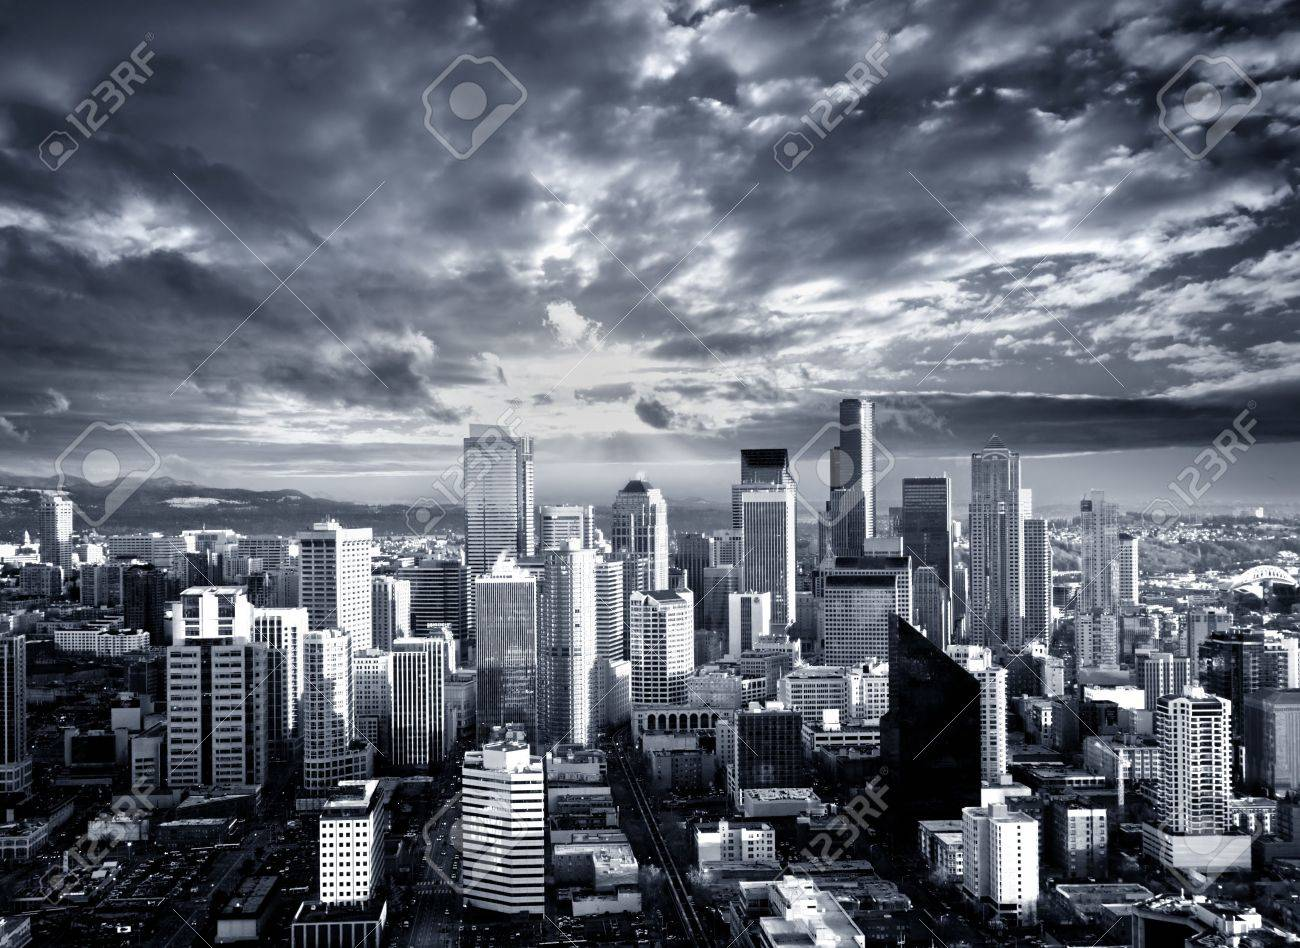 Black and White Seattle Cityscape - 5568551